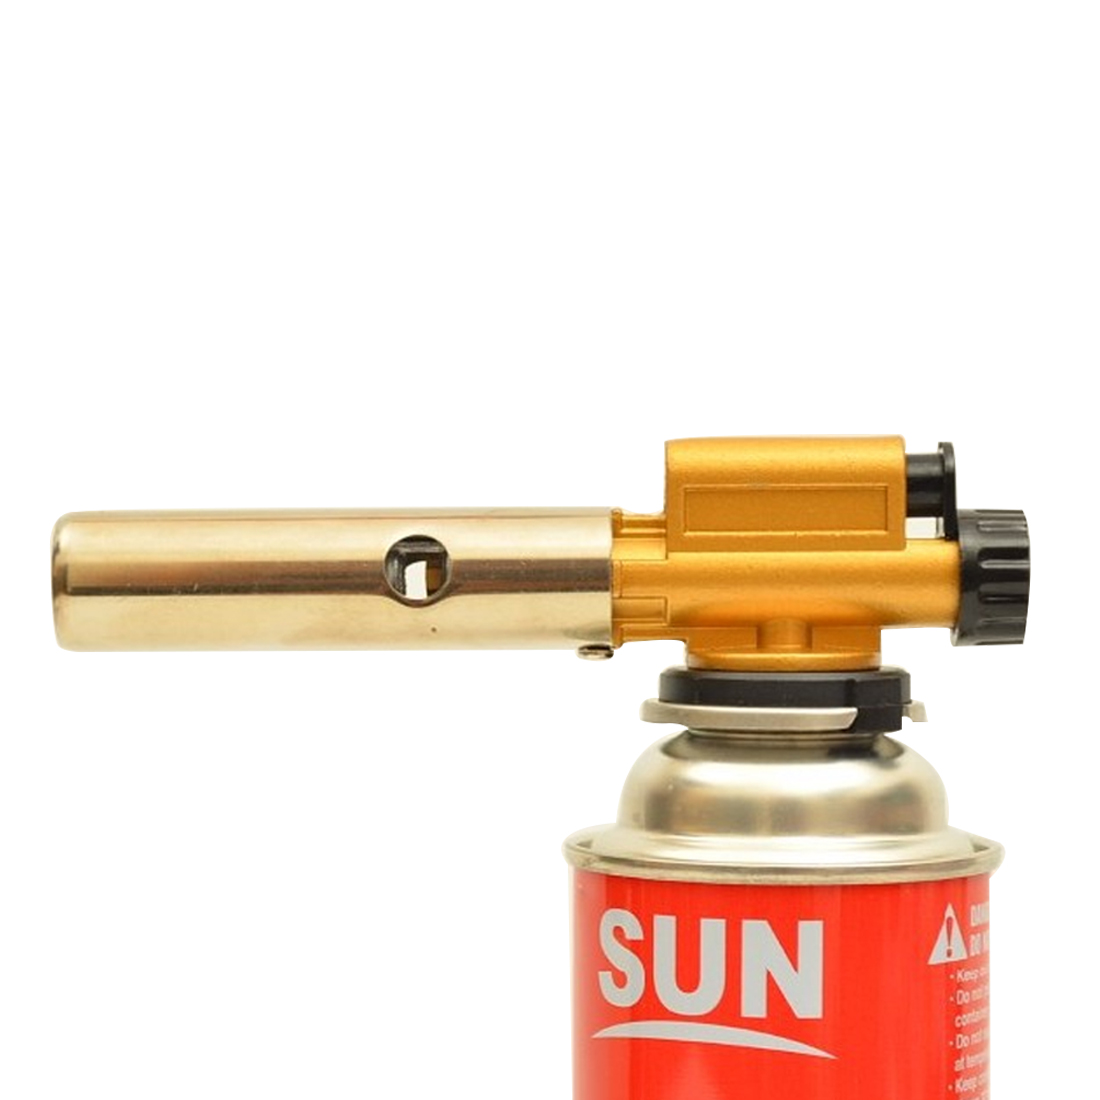 Butane Gas Burner Ignition Copper Flame Gun Lighter Tool Lighter For Outdoor Camping Picnic Cooking Welding Equipment horizontal stripe pattern butane gas lighter w keychain silver yellow